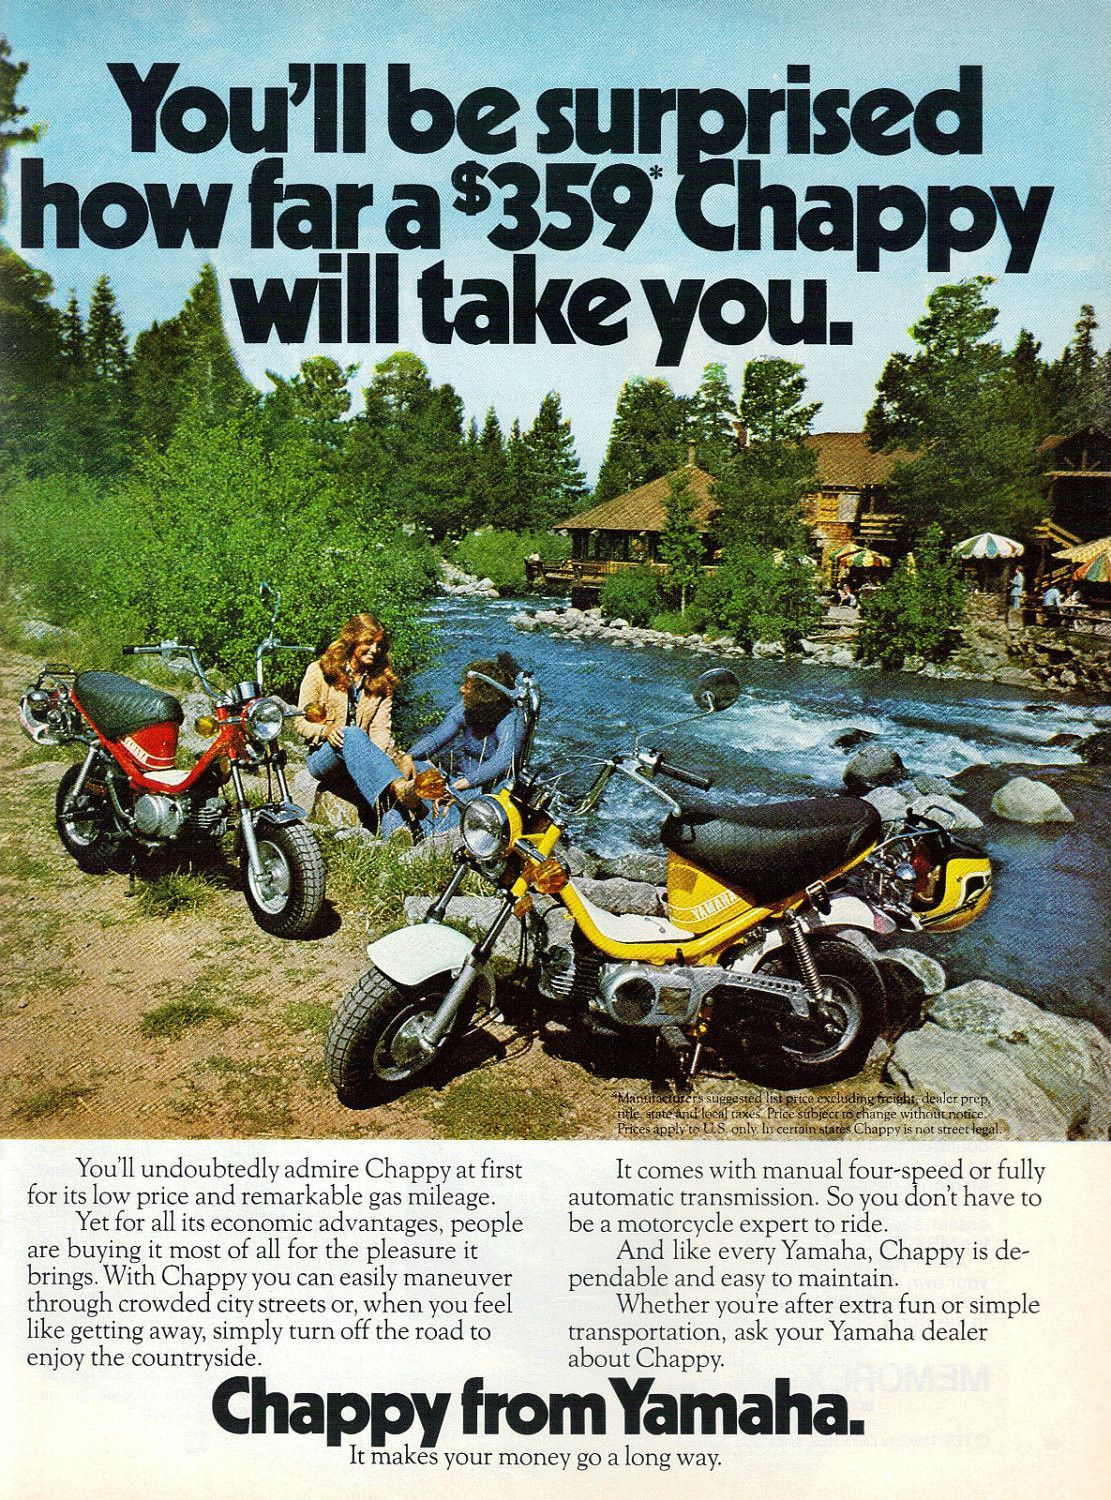 a 1975 advertisement for the yamaha chappy color photo print of these two mini motorcycles